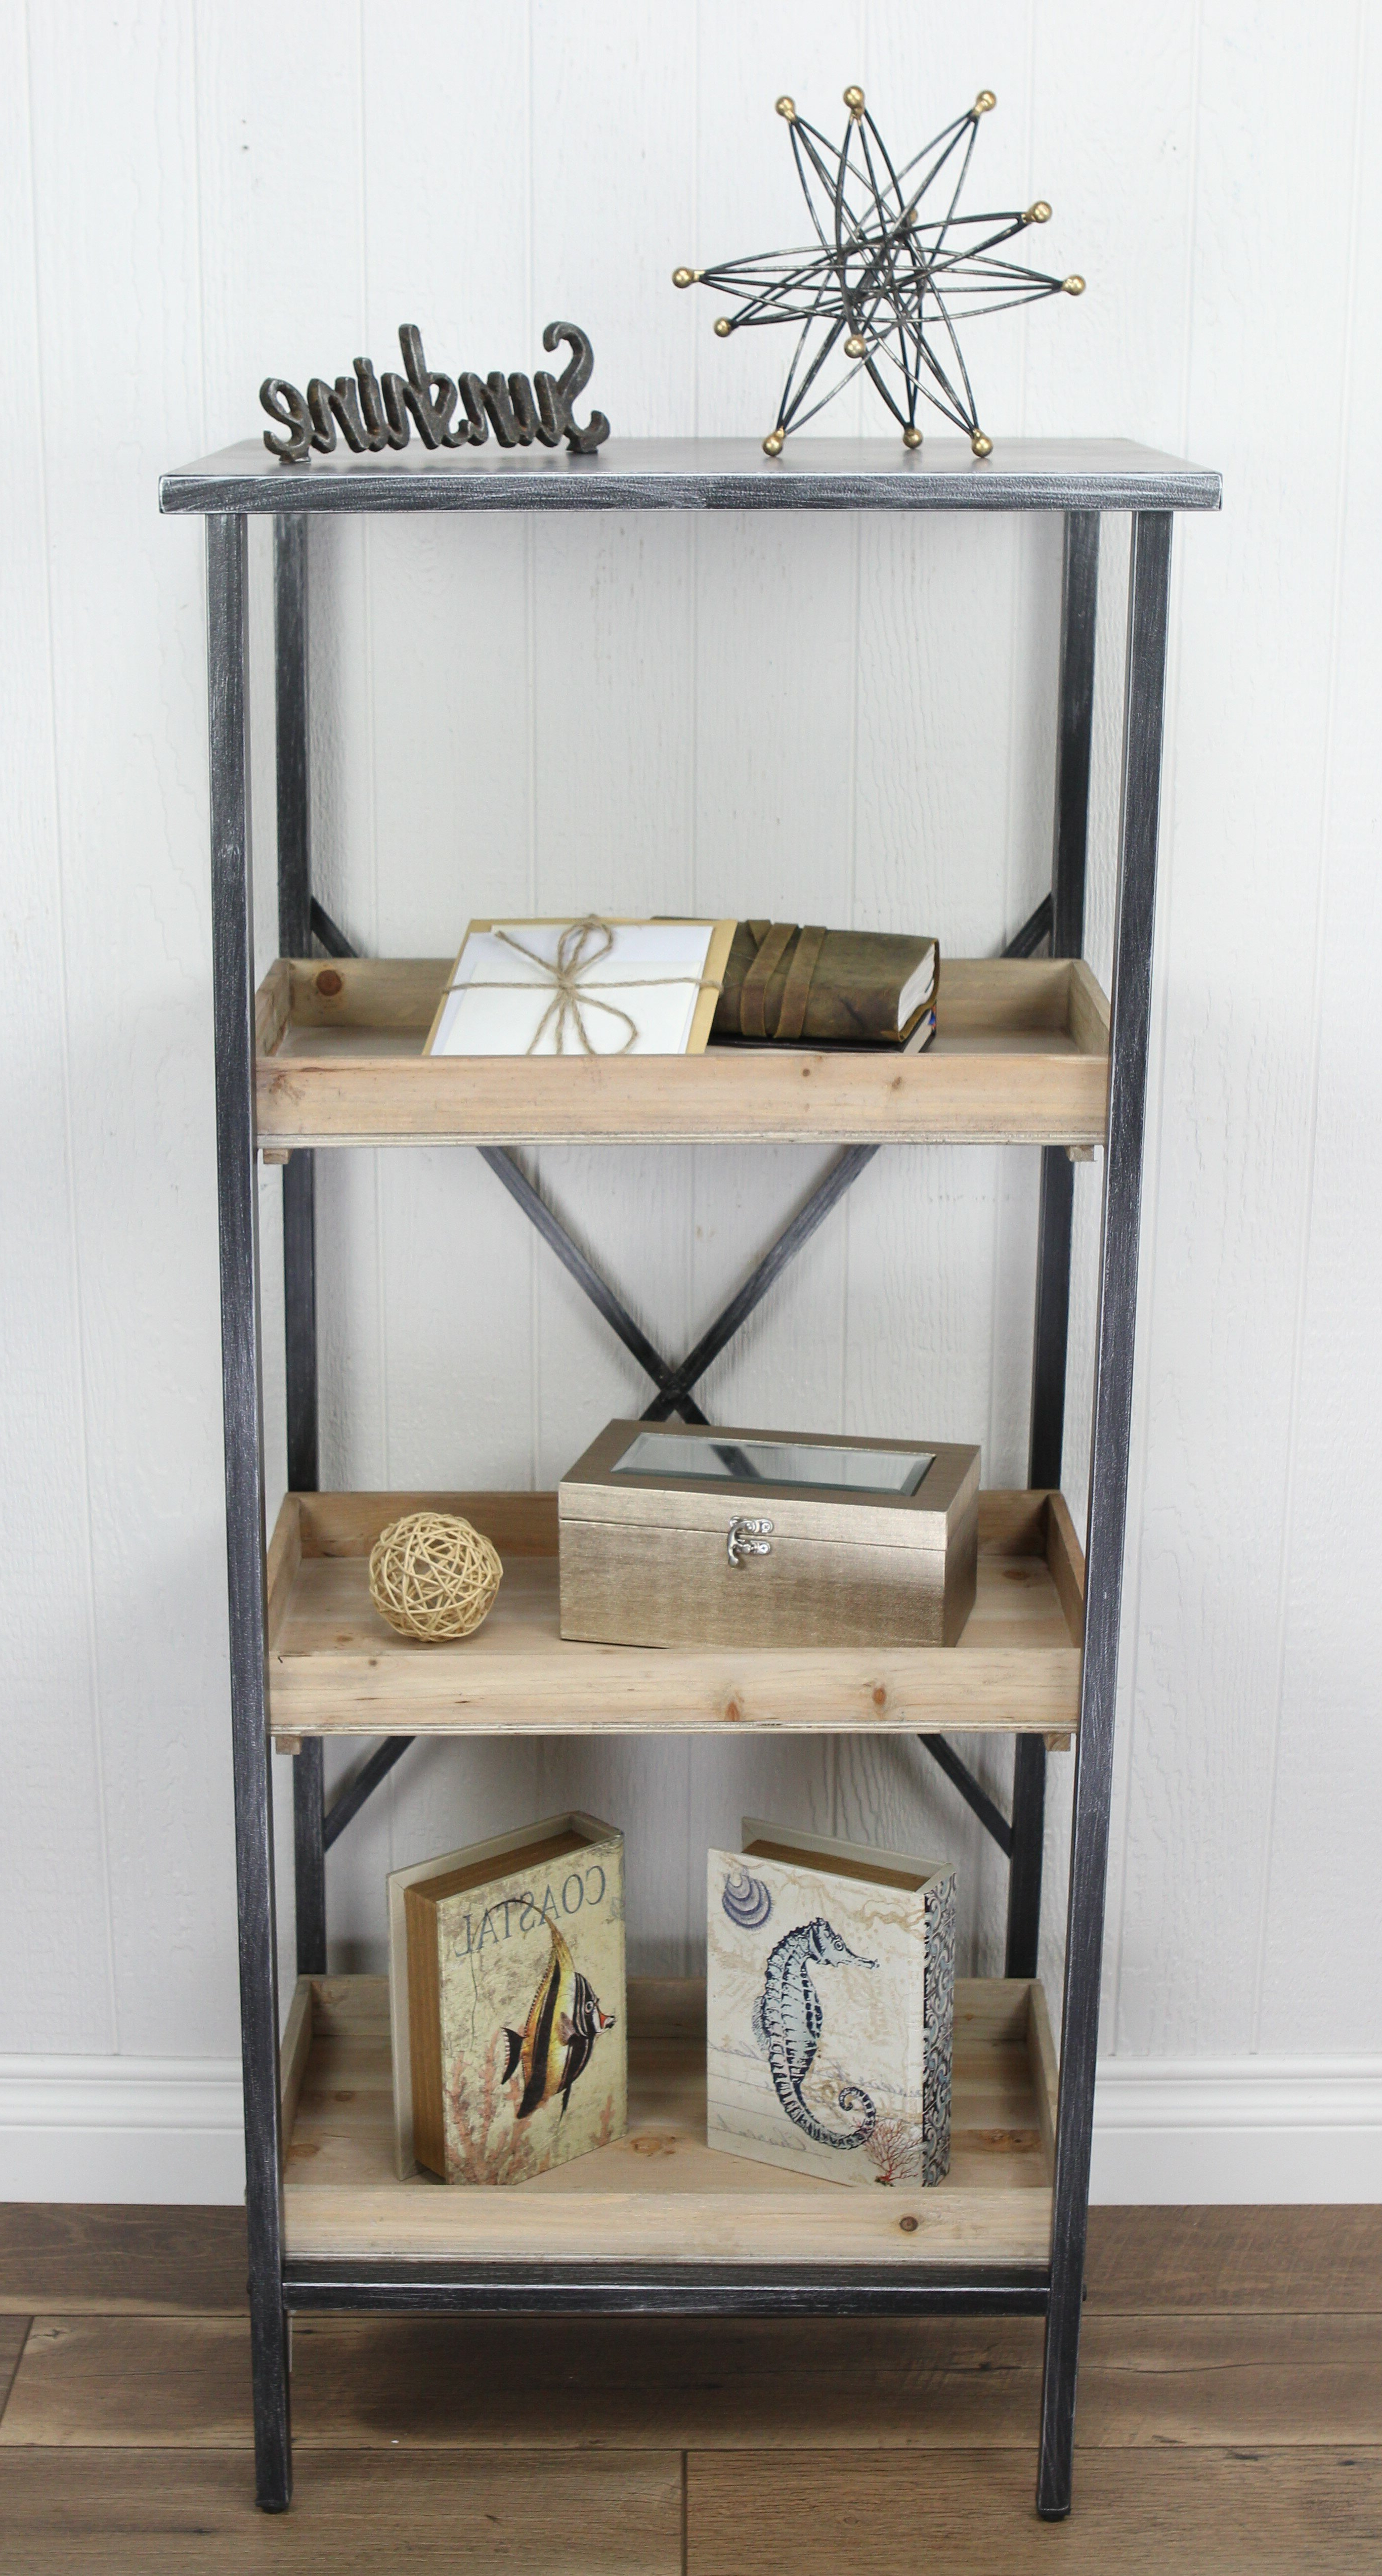 Widely Used Whipkey Etagere Bookcases In Gracie Oaks Muro Etagere Bookcase (View 7 of 20)